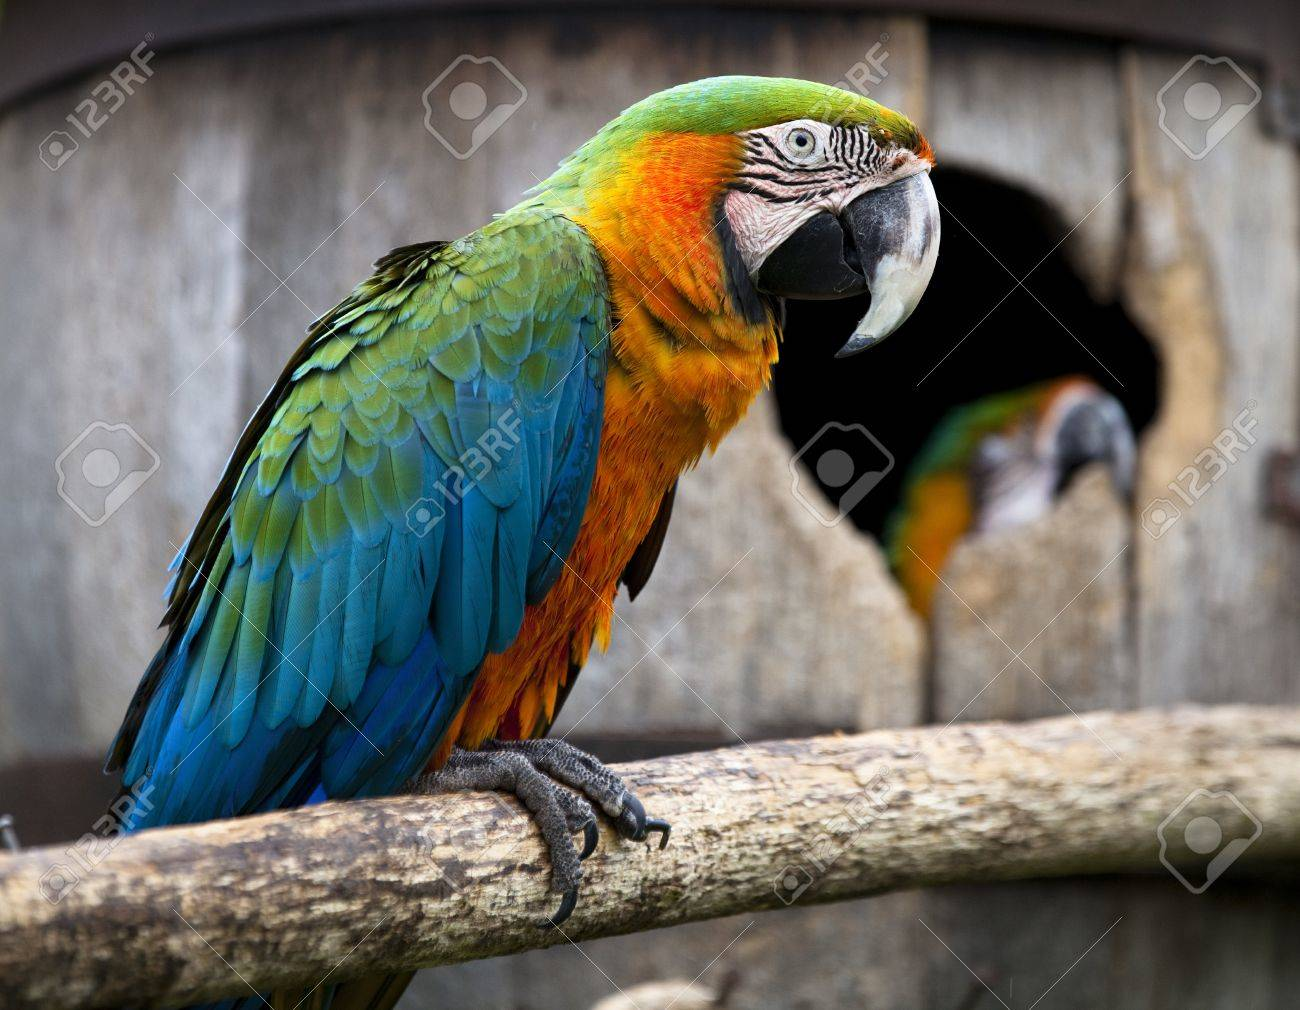 Captive macaw parrot on a natural branch with it's mate in the